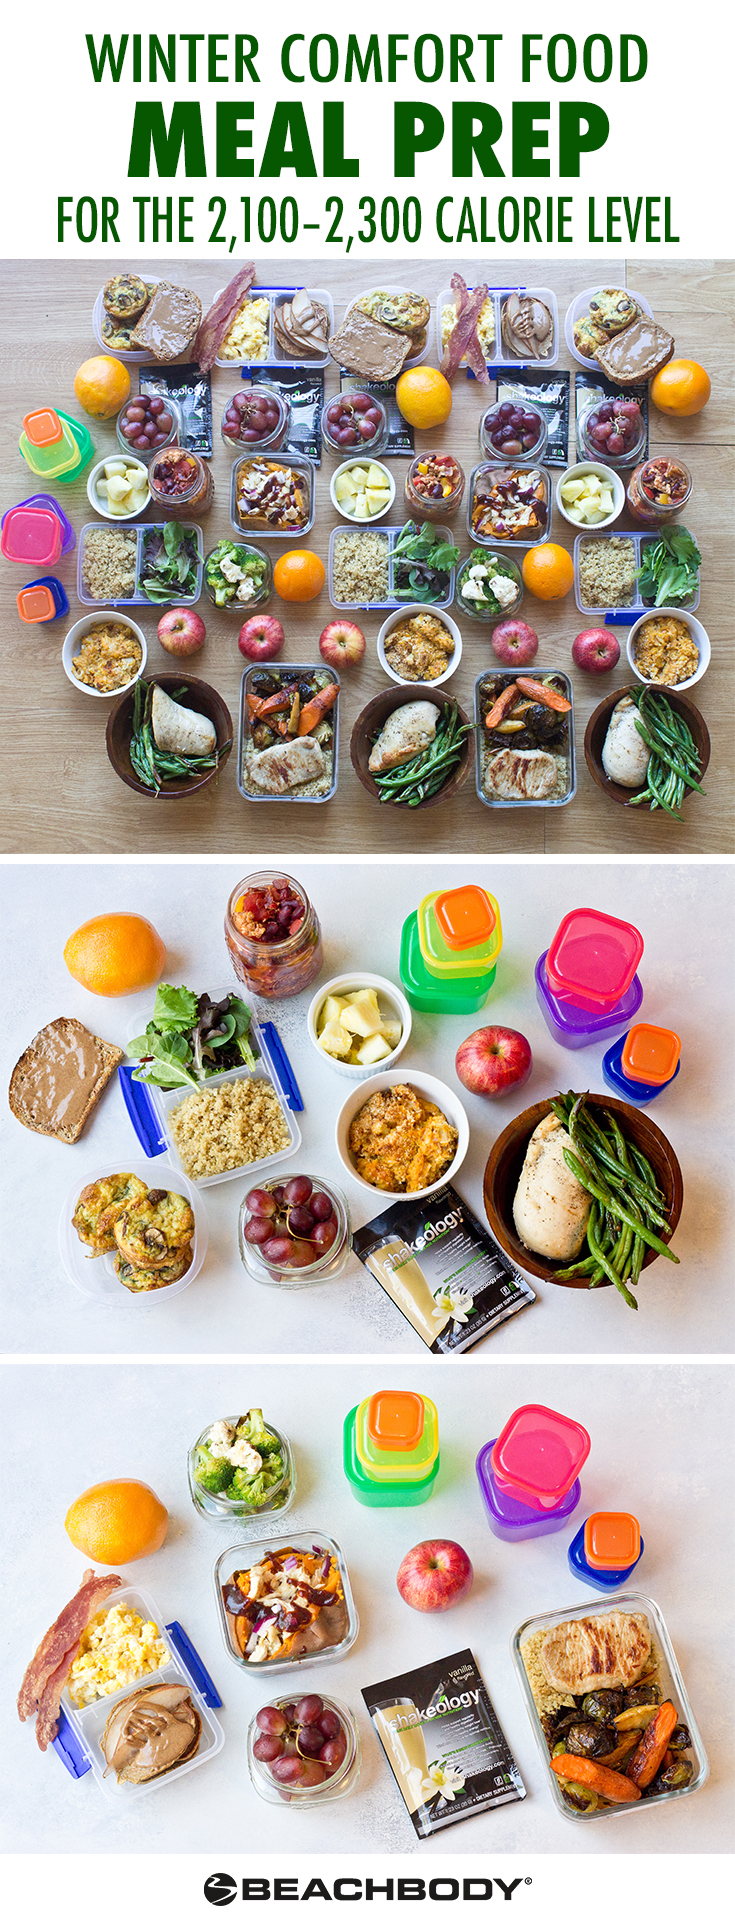 Make this Winter Comfort Foods Meal Prep with 2,100-2,300 Calories